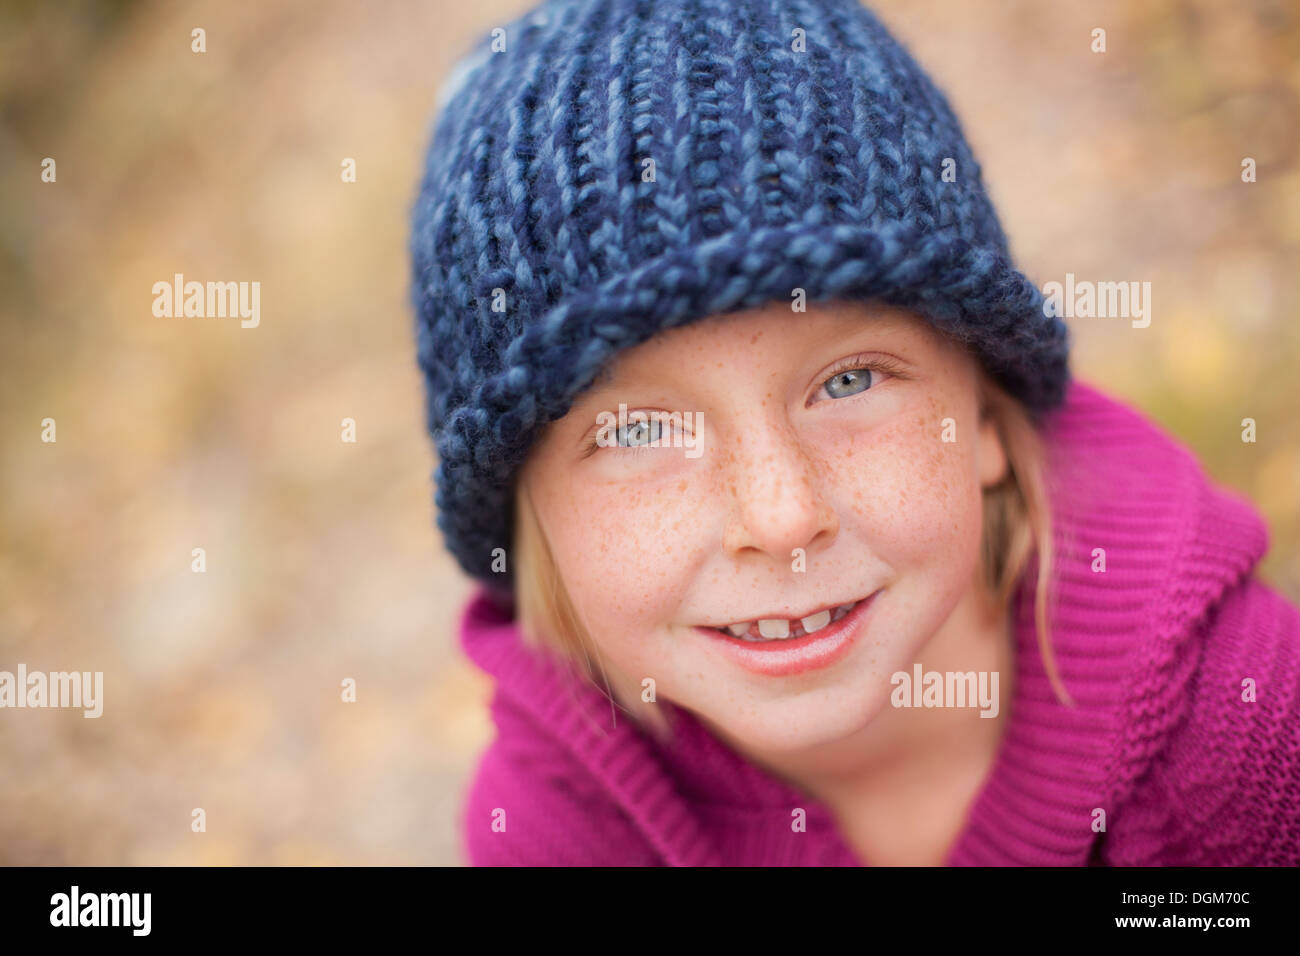 A girl in a knitted hat, and magenta jumper with a folded collar. Stock Photo